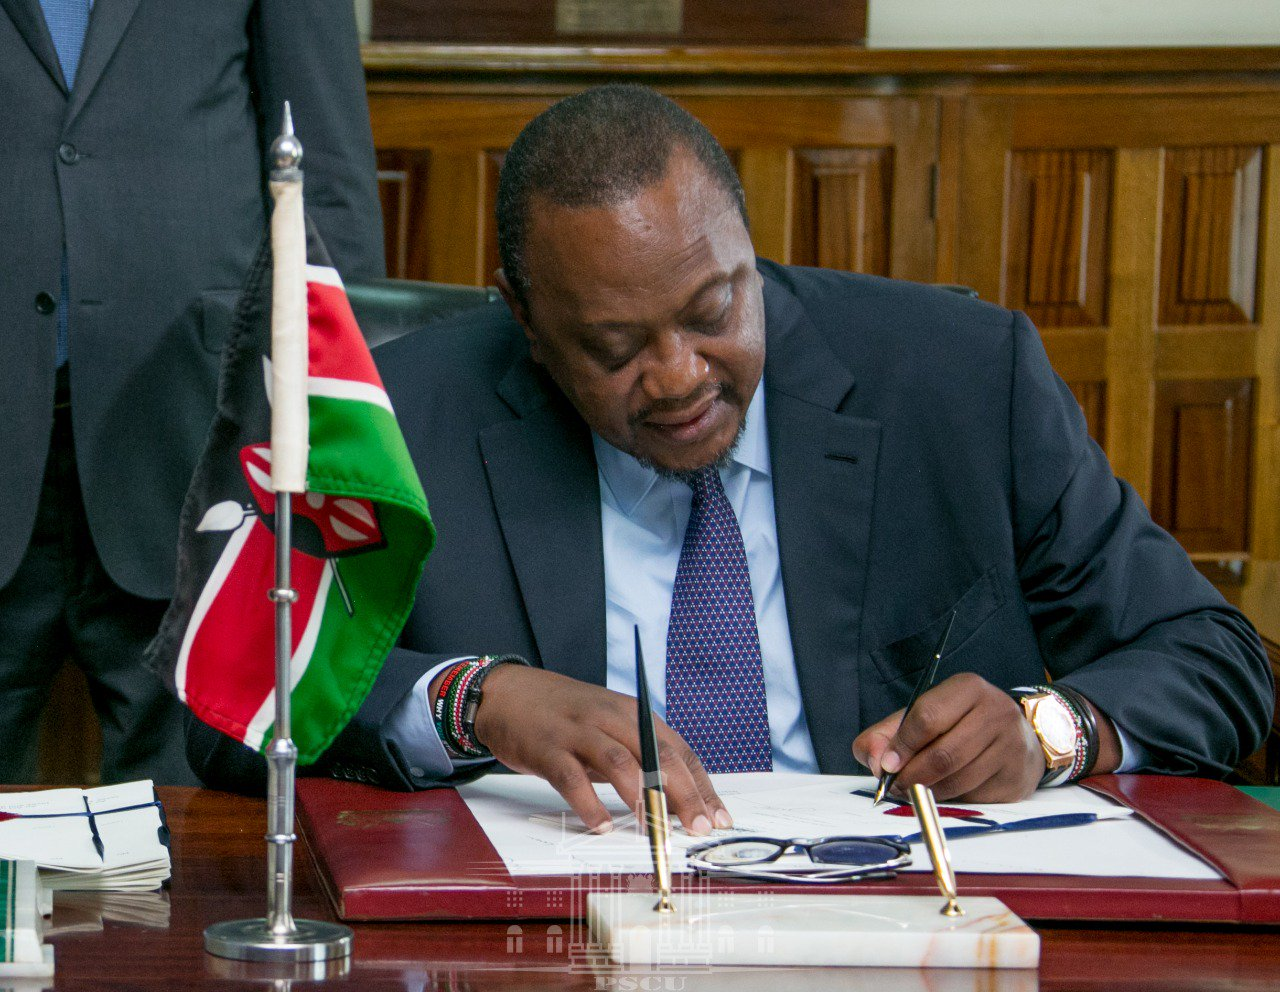 President Uhuru Kenyatta signed the data protection bill into law on Friday. www.businesstoday.co.ke